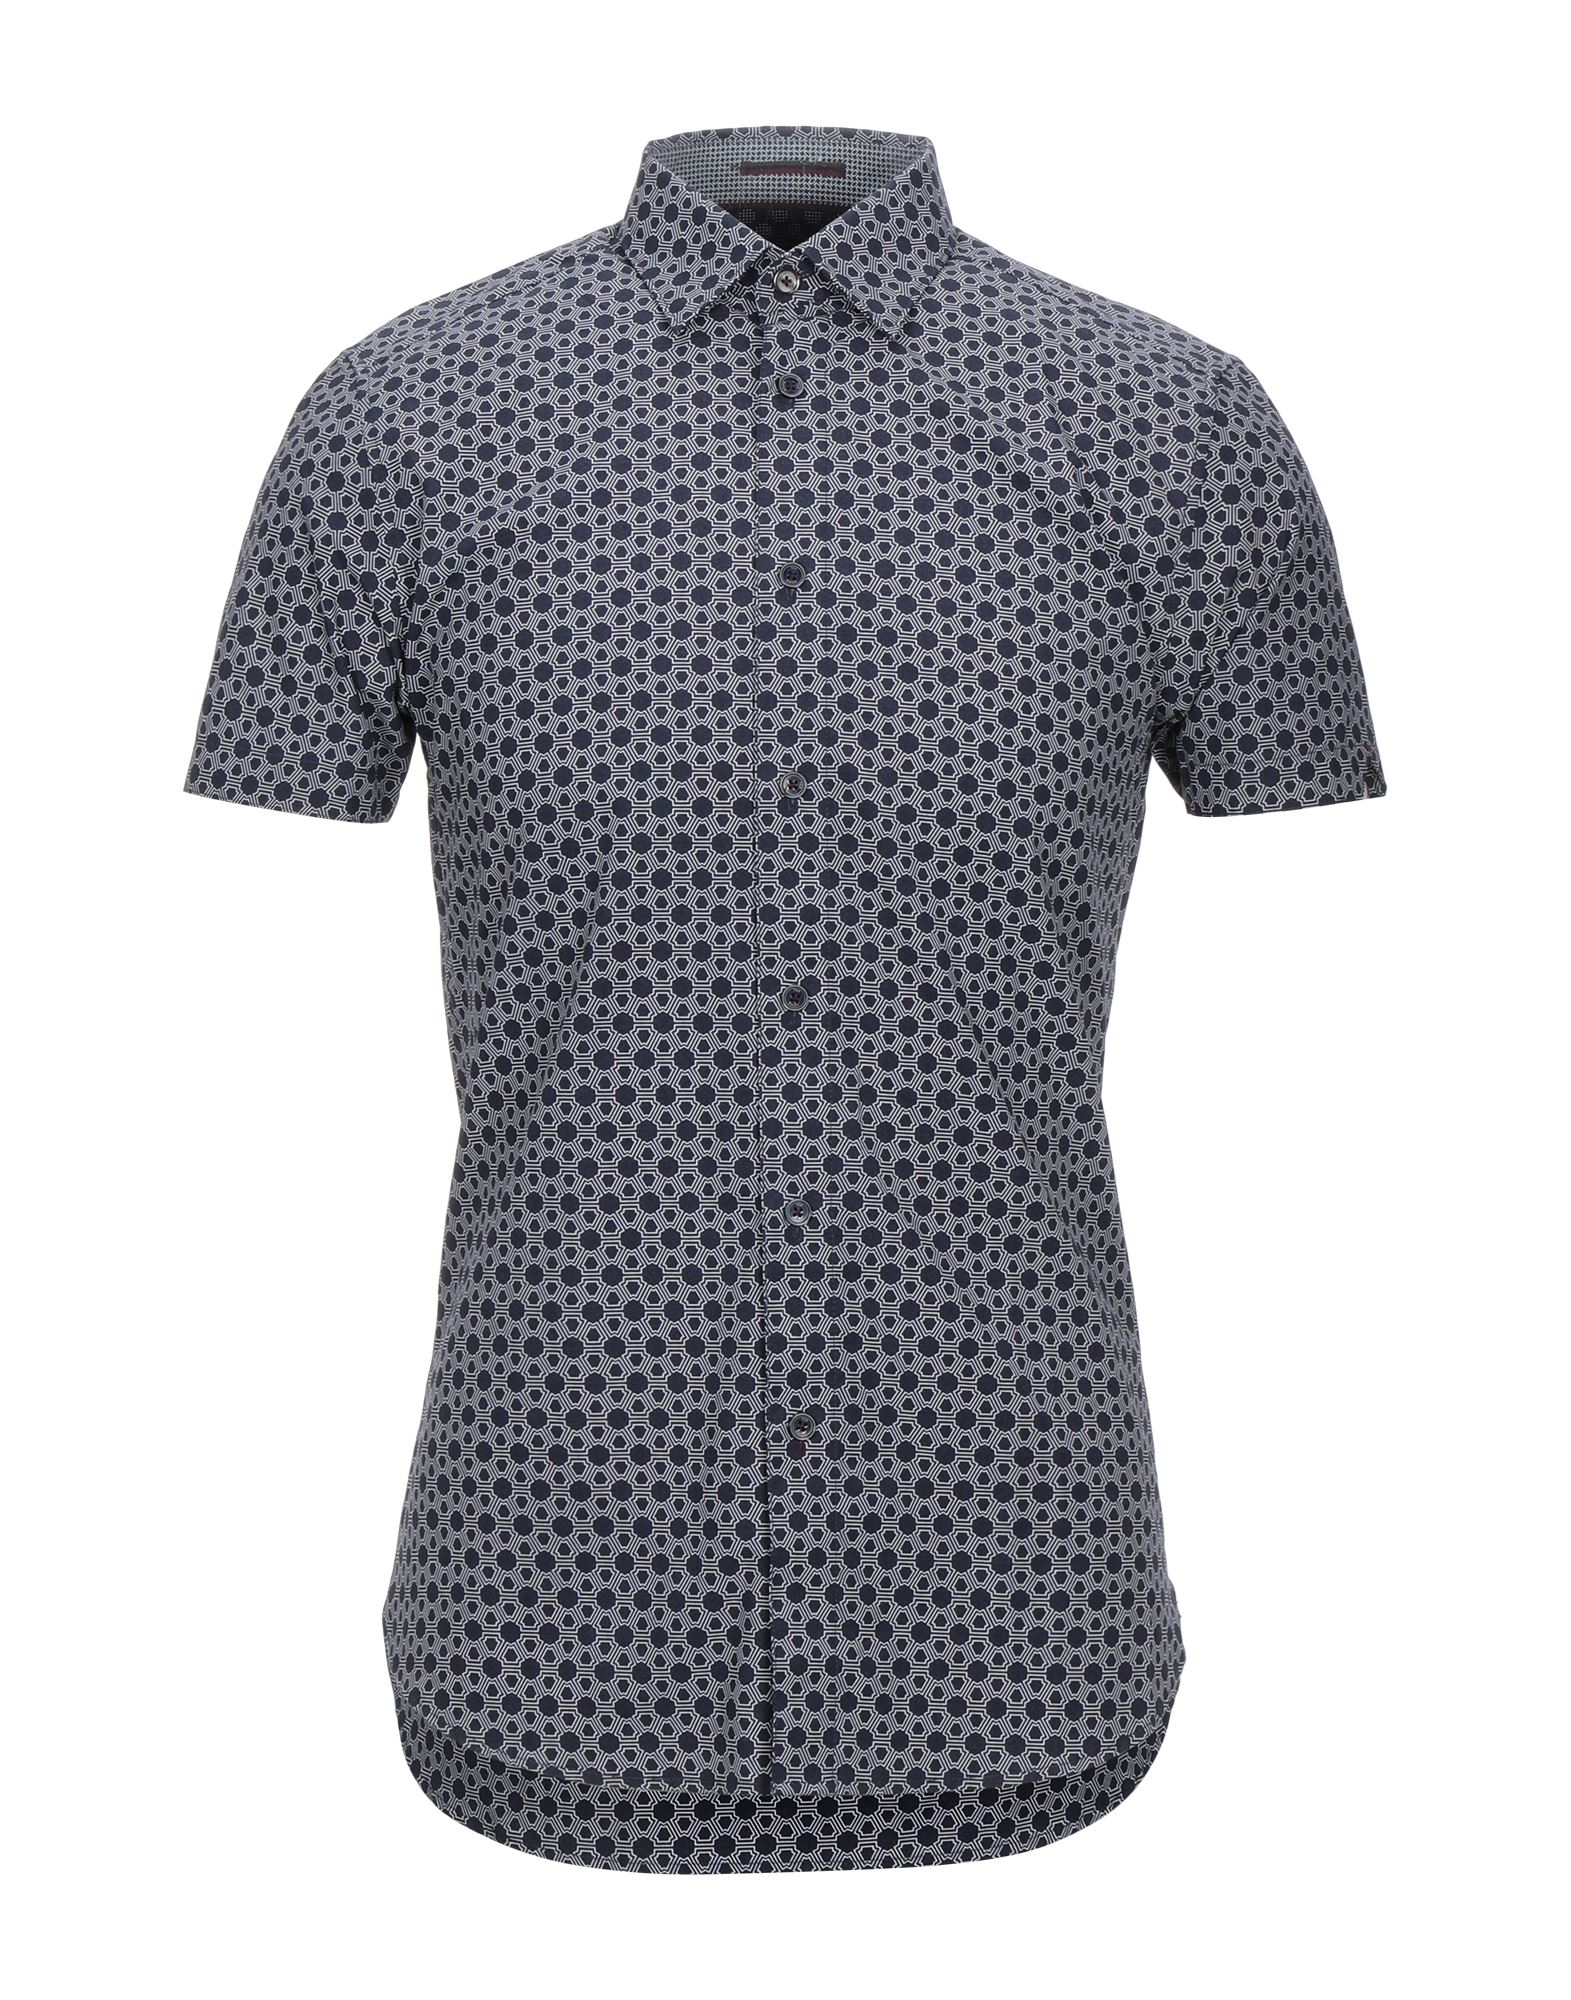 TED BAKER Shirts - Item 38961550